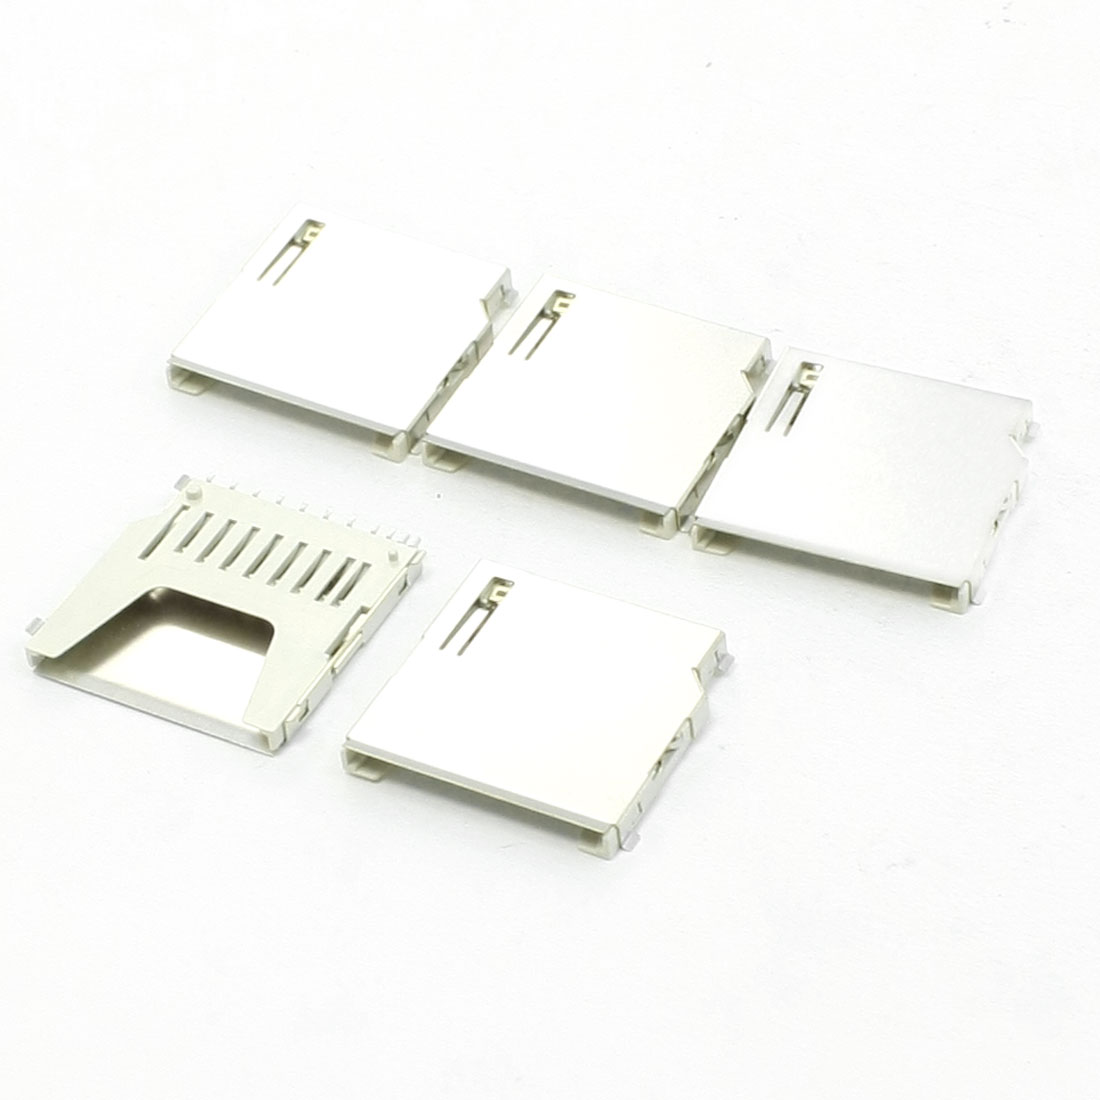 "5 Pcs SD Memory Card Sockets 1"" x 1"" x 0.1"" for Digital Camera"